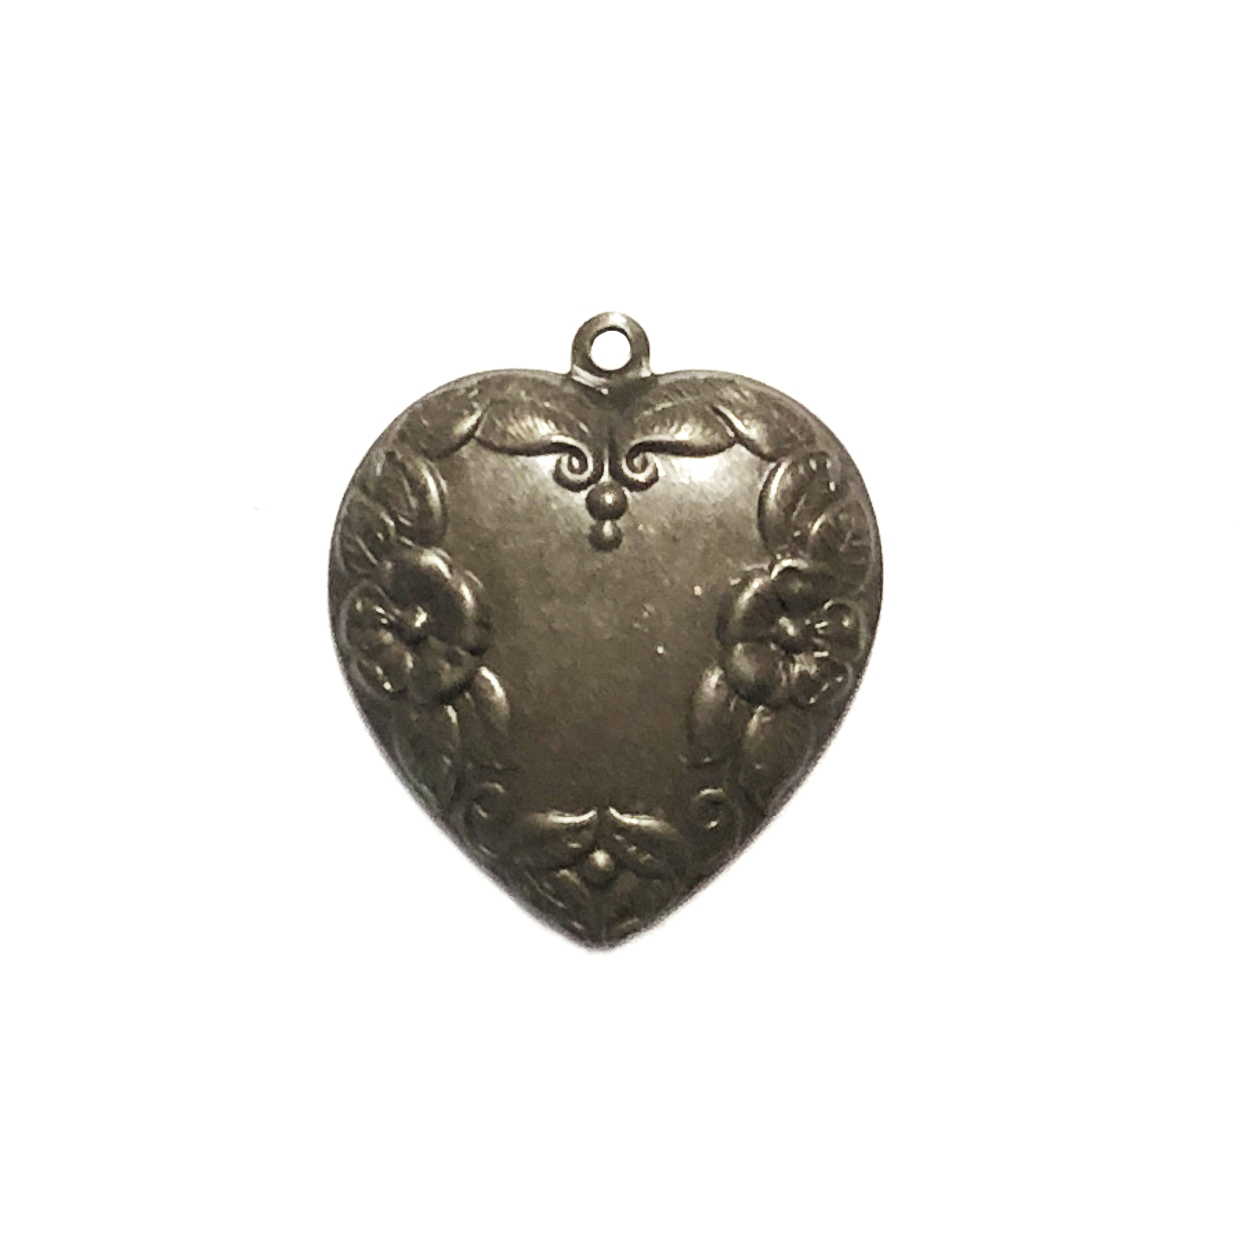 brass hearts, heart charms, chocolate brass, 09922, 22mm, jewelry making supplies, US made, nickel free, bsueboutiques, jewelry charms, heart stampings, vintage jewelry supplies